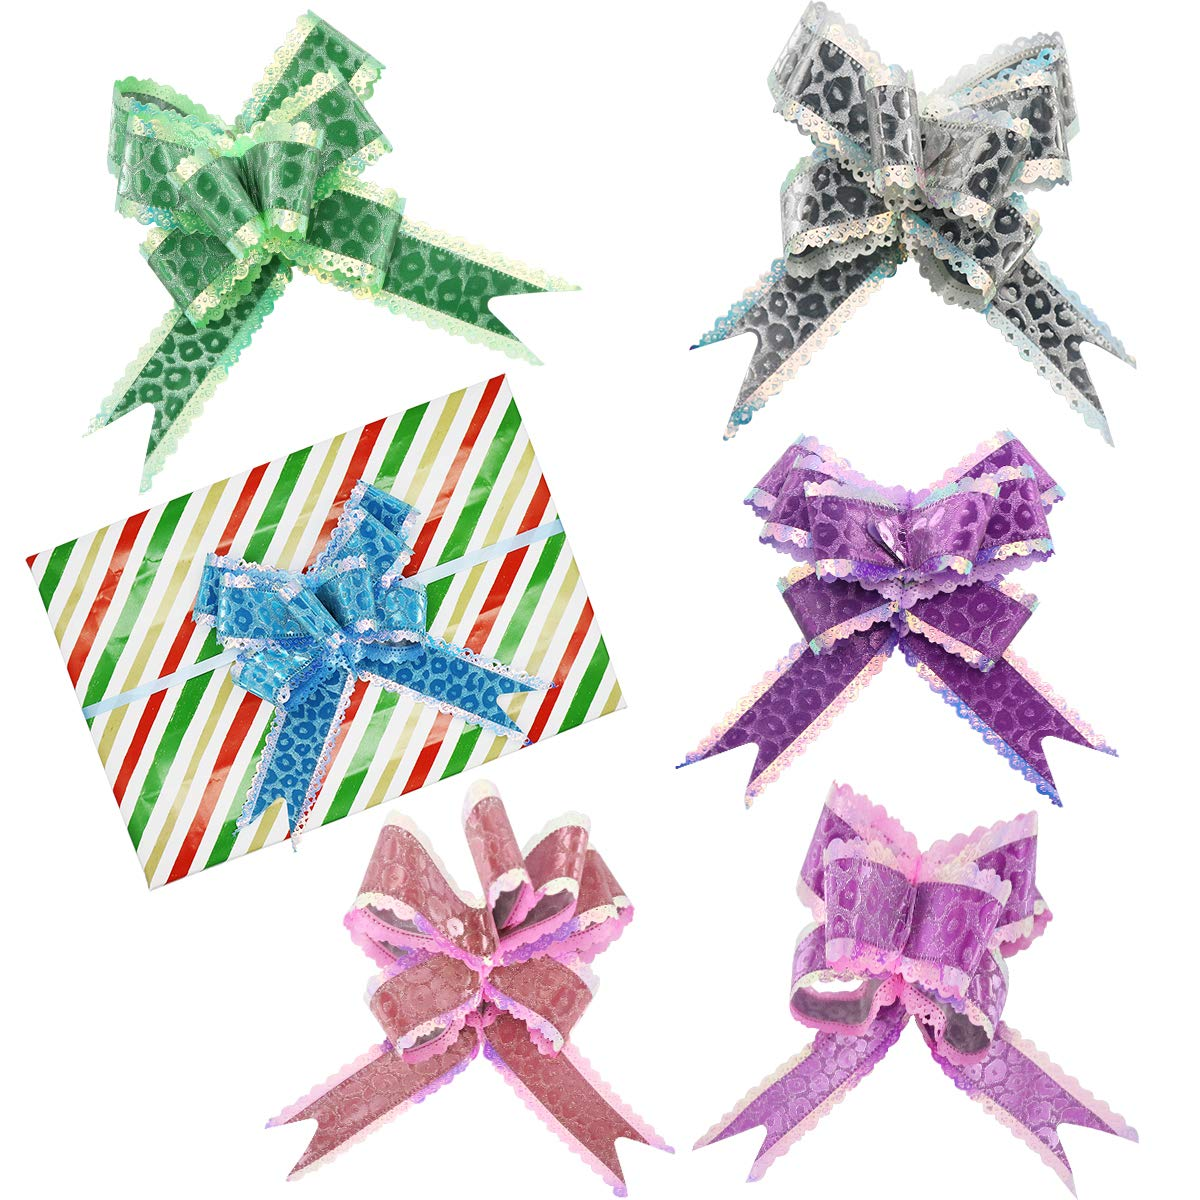 24 Pcs 5.9'' Pull Bows for Gift Wrapping,Christmas/Wedding/Valentine's Day/Present Decoration Pull Bows (B Style)